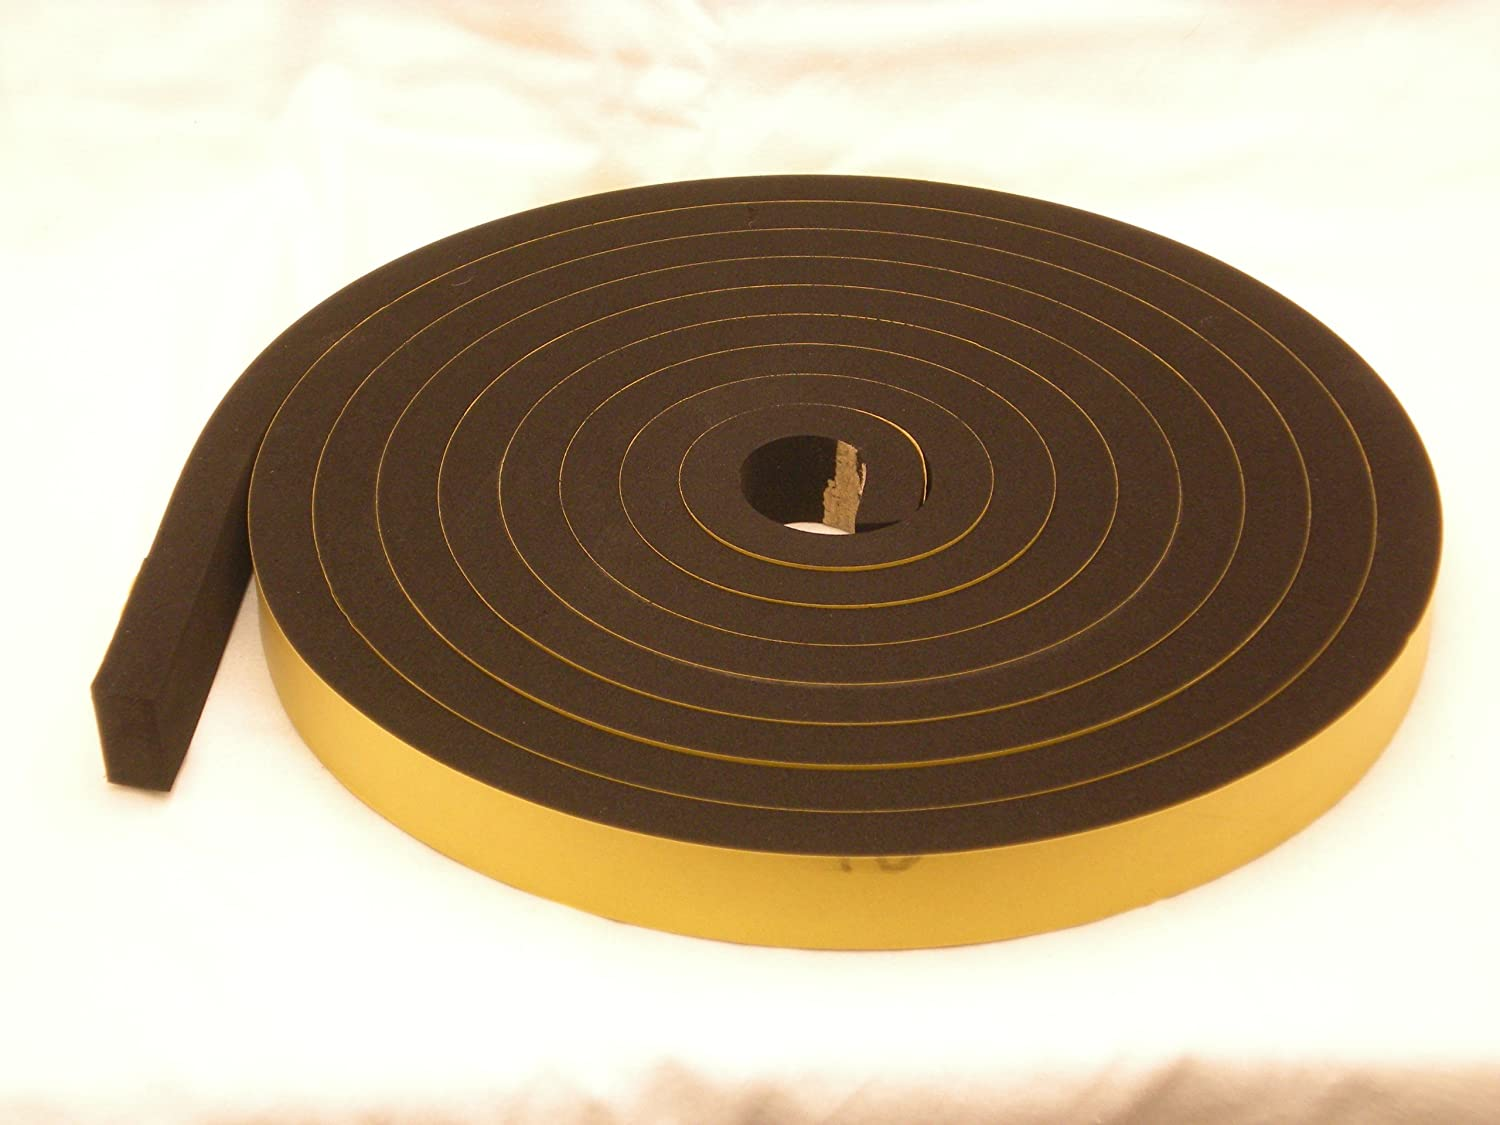 Neoprene Rubber Self Adhesive Strip 25 mm wide x 15 mm thick x 5 m long rubber products